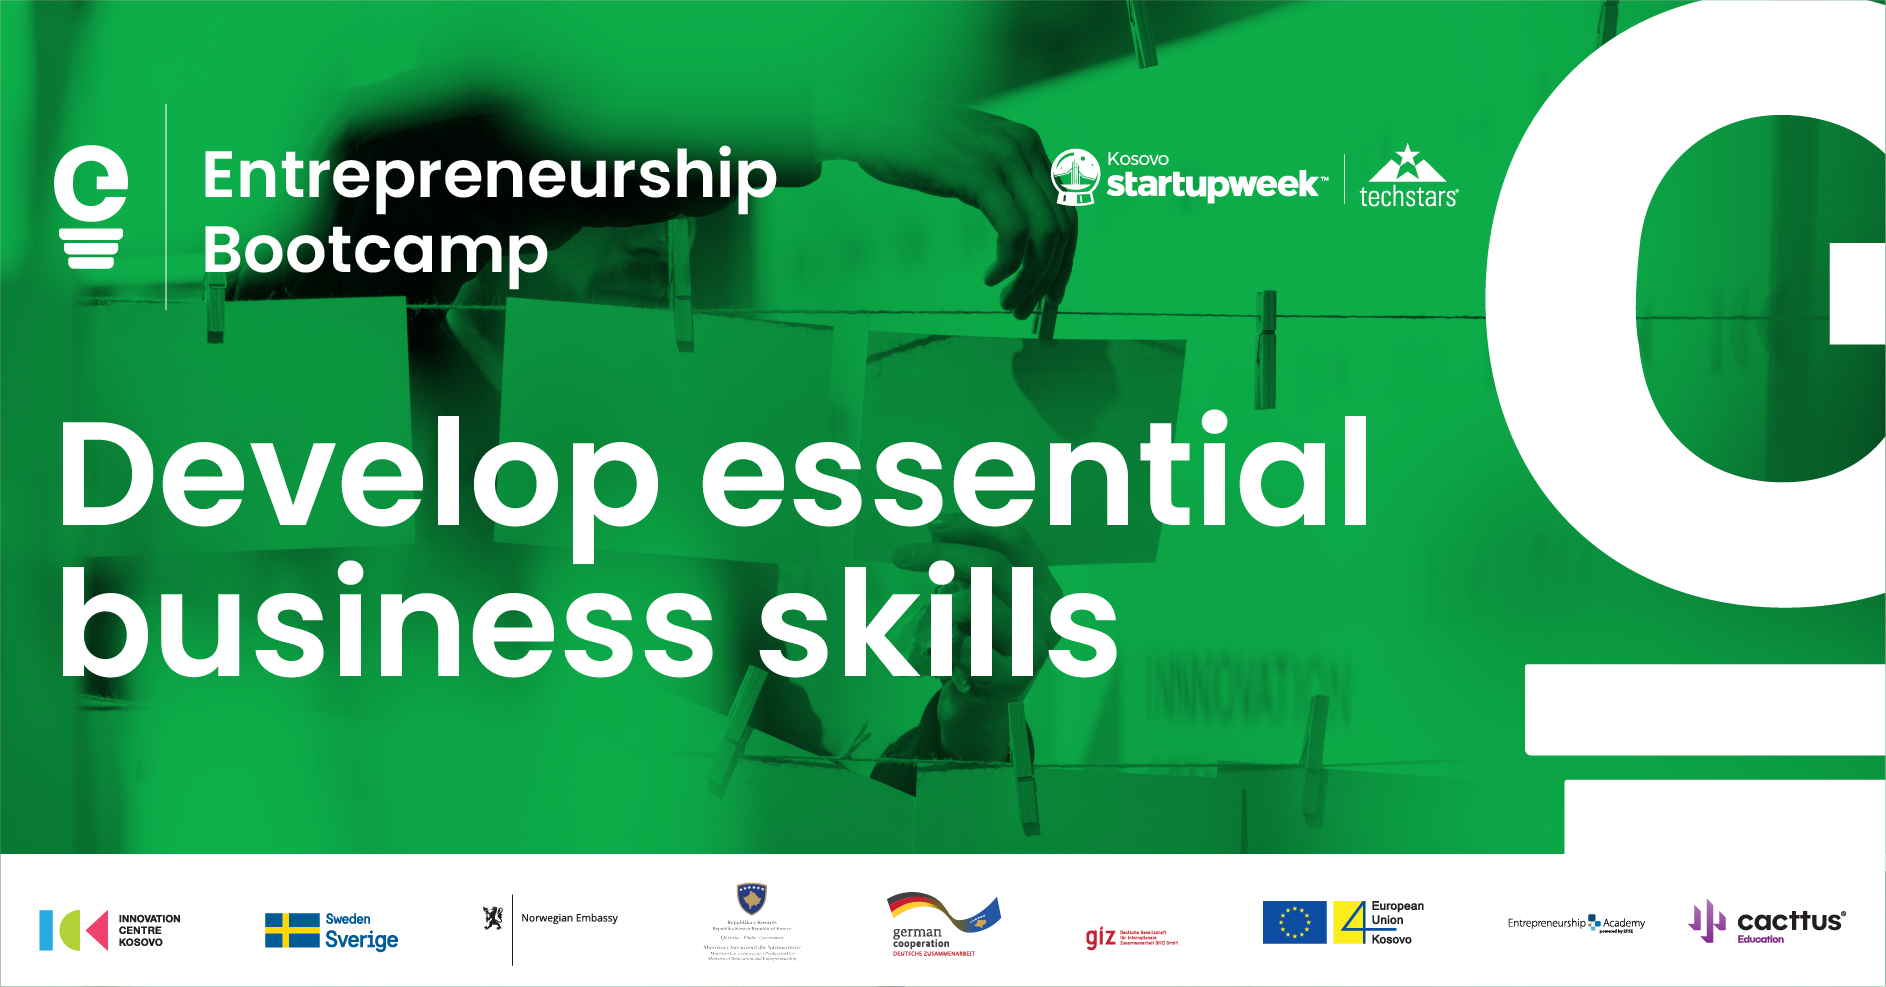 Entrepreneurship Bootcamp